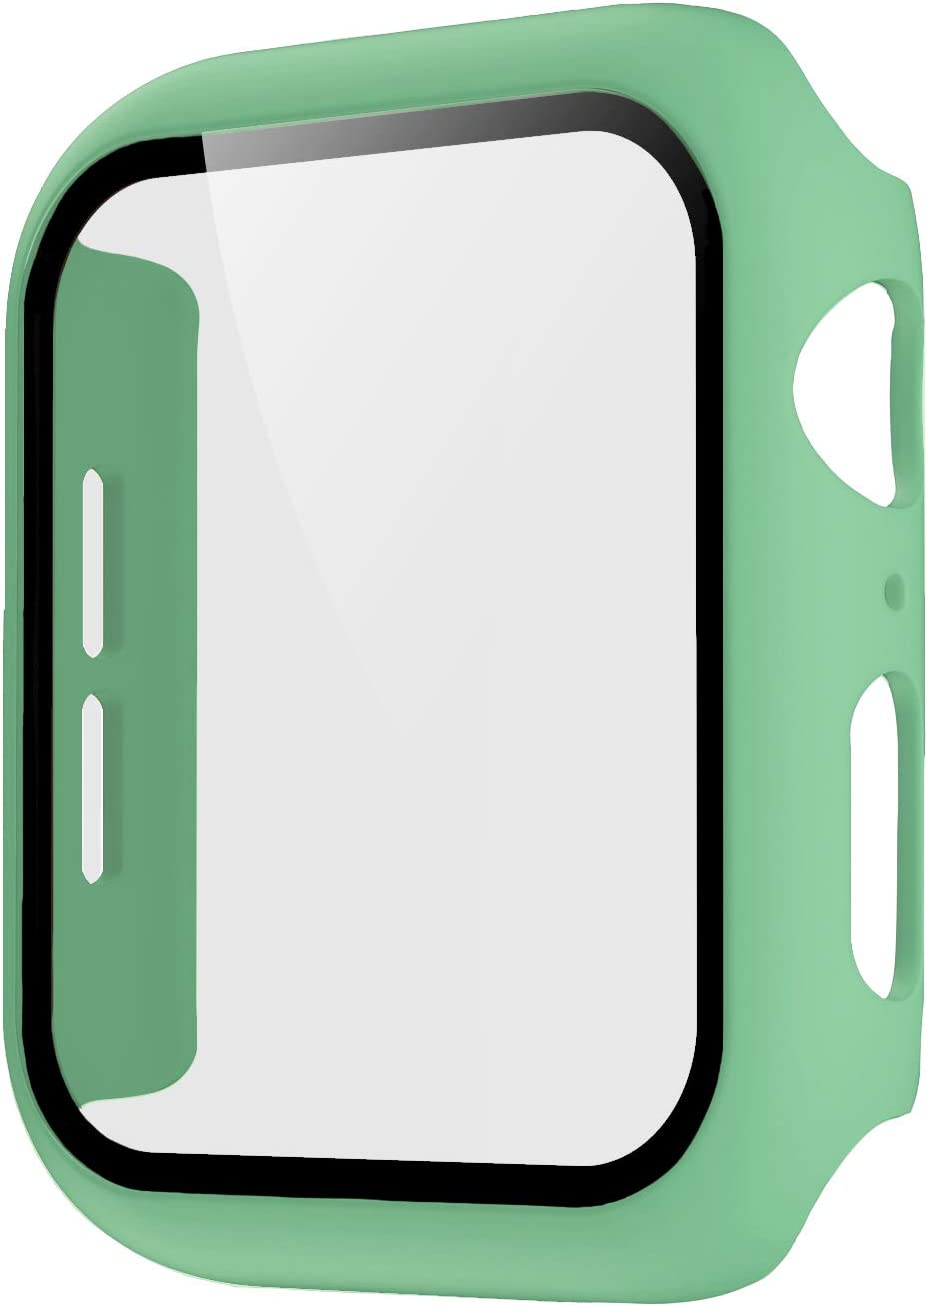 Pokanic Compatible with Apple Watch SE 6 5 4 3 2 1 Series iWatch 9H Tempered Glass Case Full Body Screen Protector Cover Wireless Charge Light Weight Scratch Resistant Proof (Mint Green, 44mm)